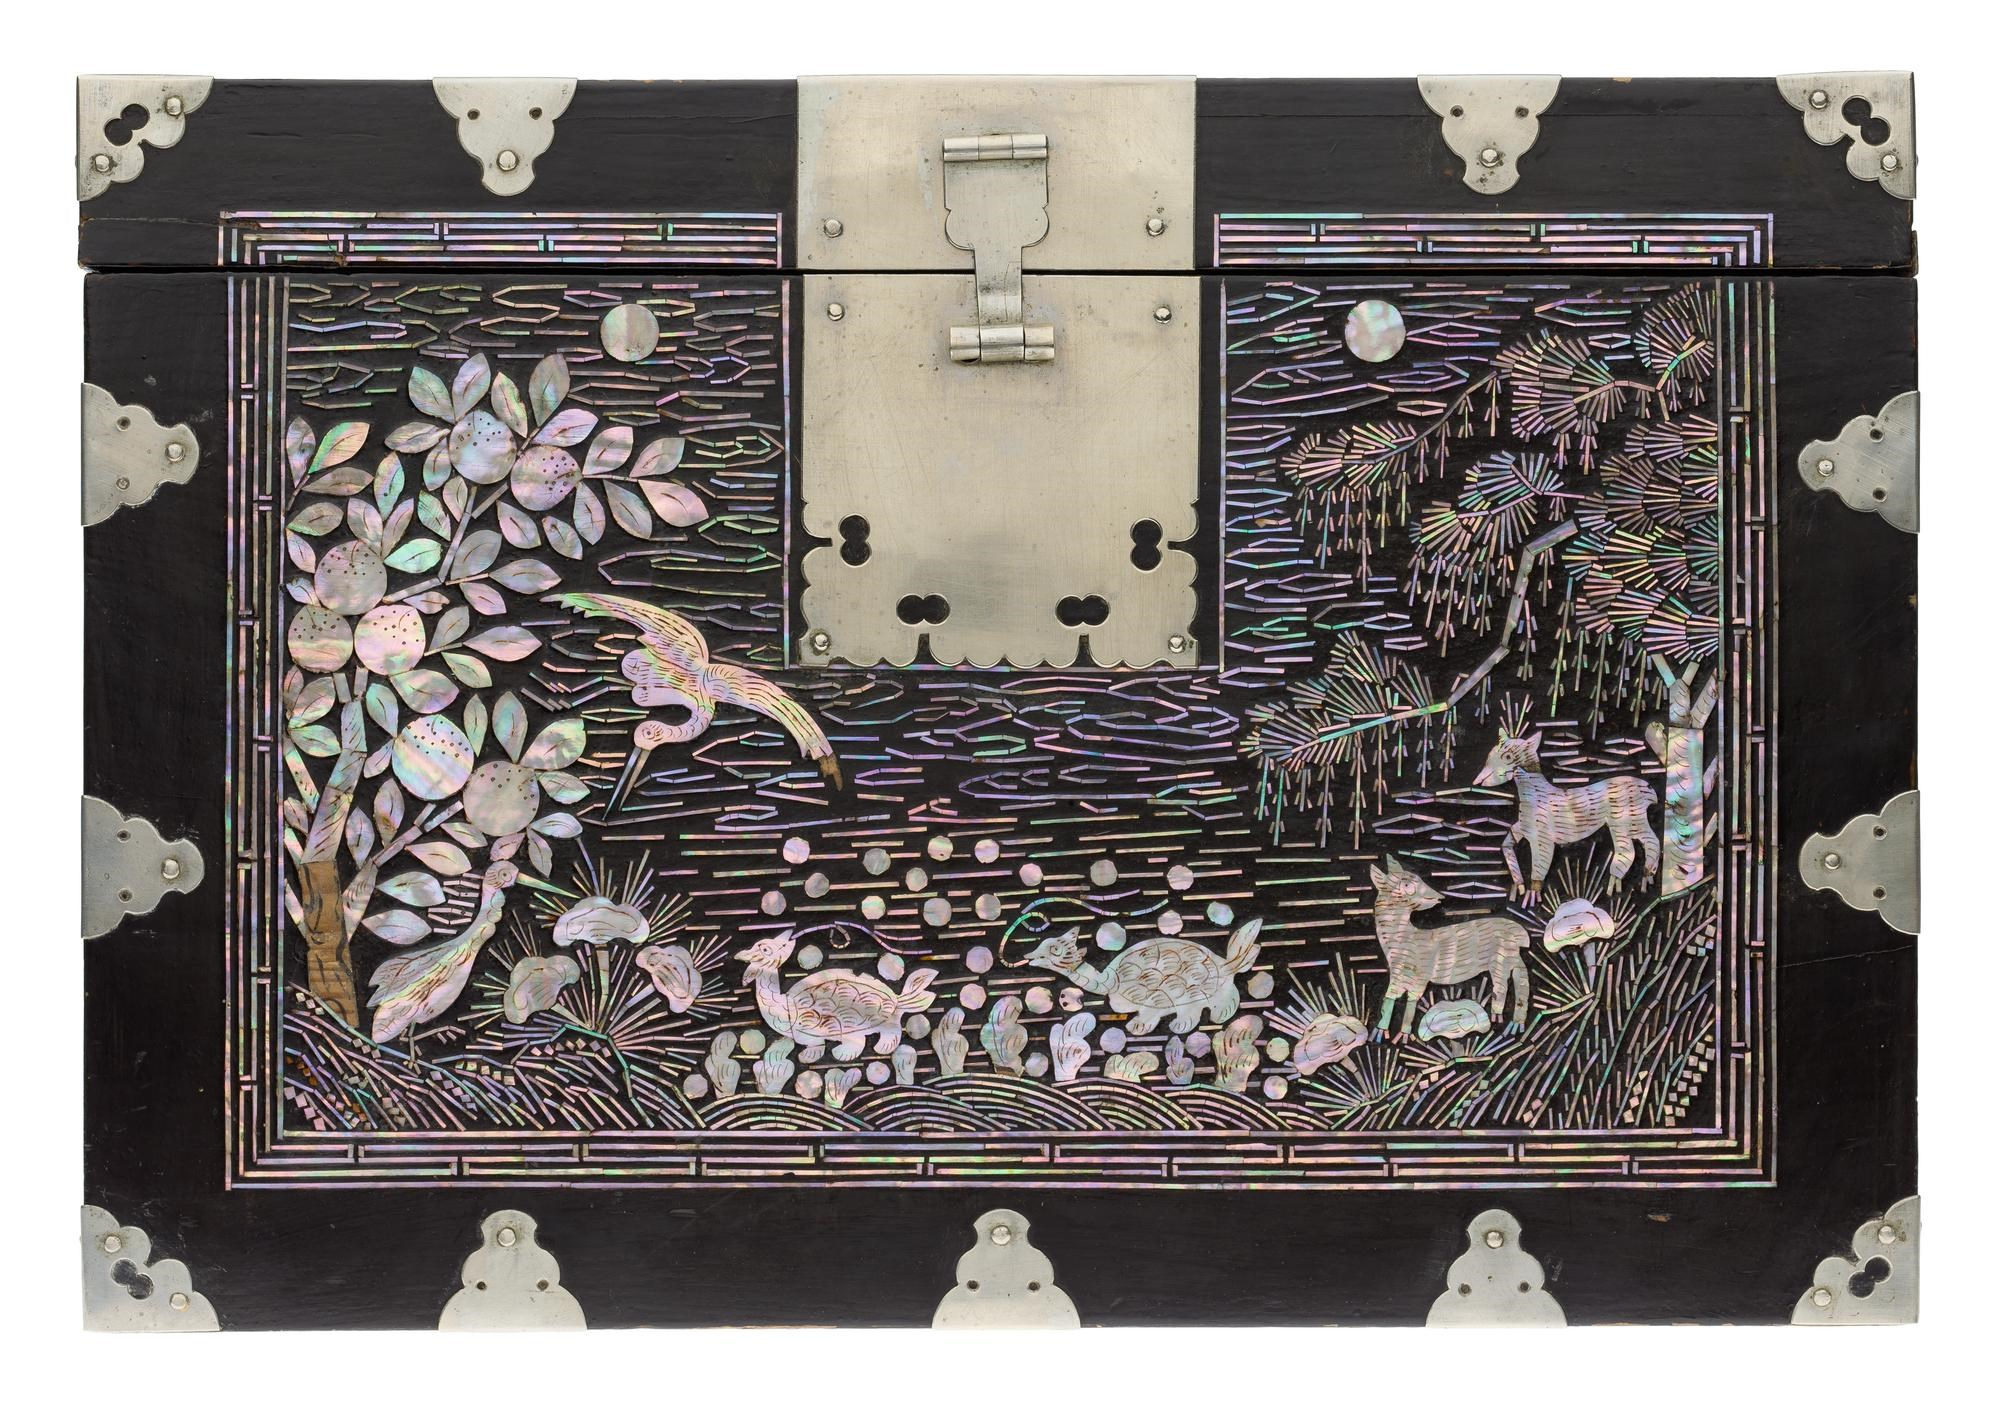 Lidded document box (soryu ham) of black lacquered wood inlaid with mother-of-pearl, with metal mounts and handles: Korea, Joseon Dynasty, late 19th century.